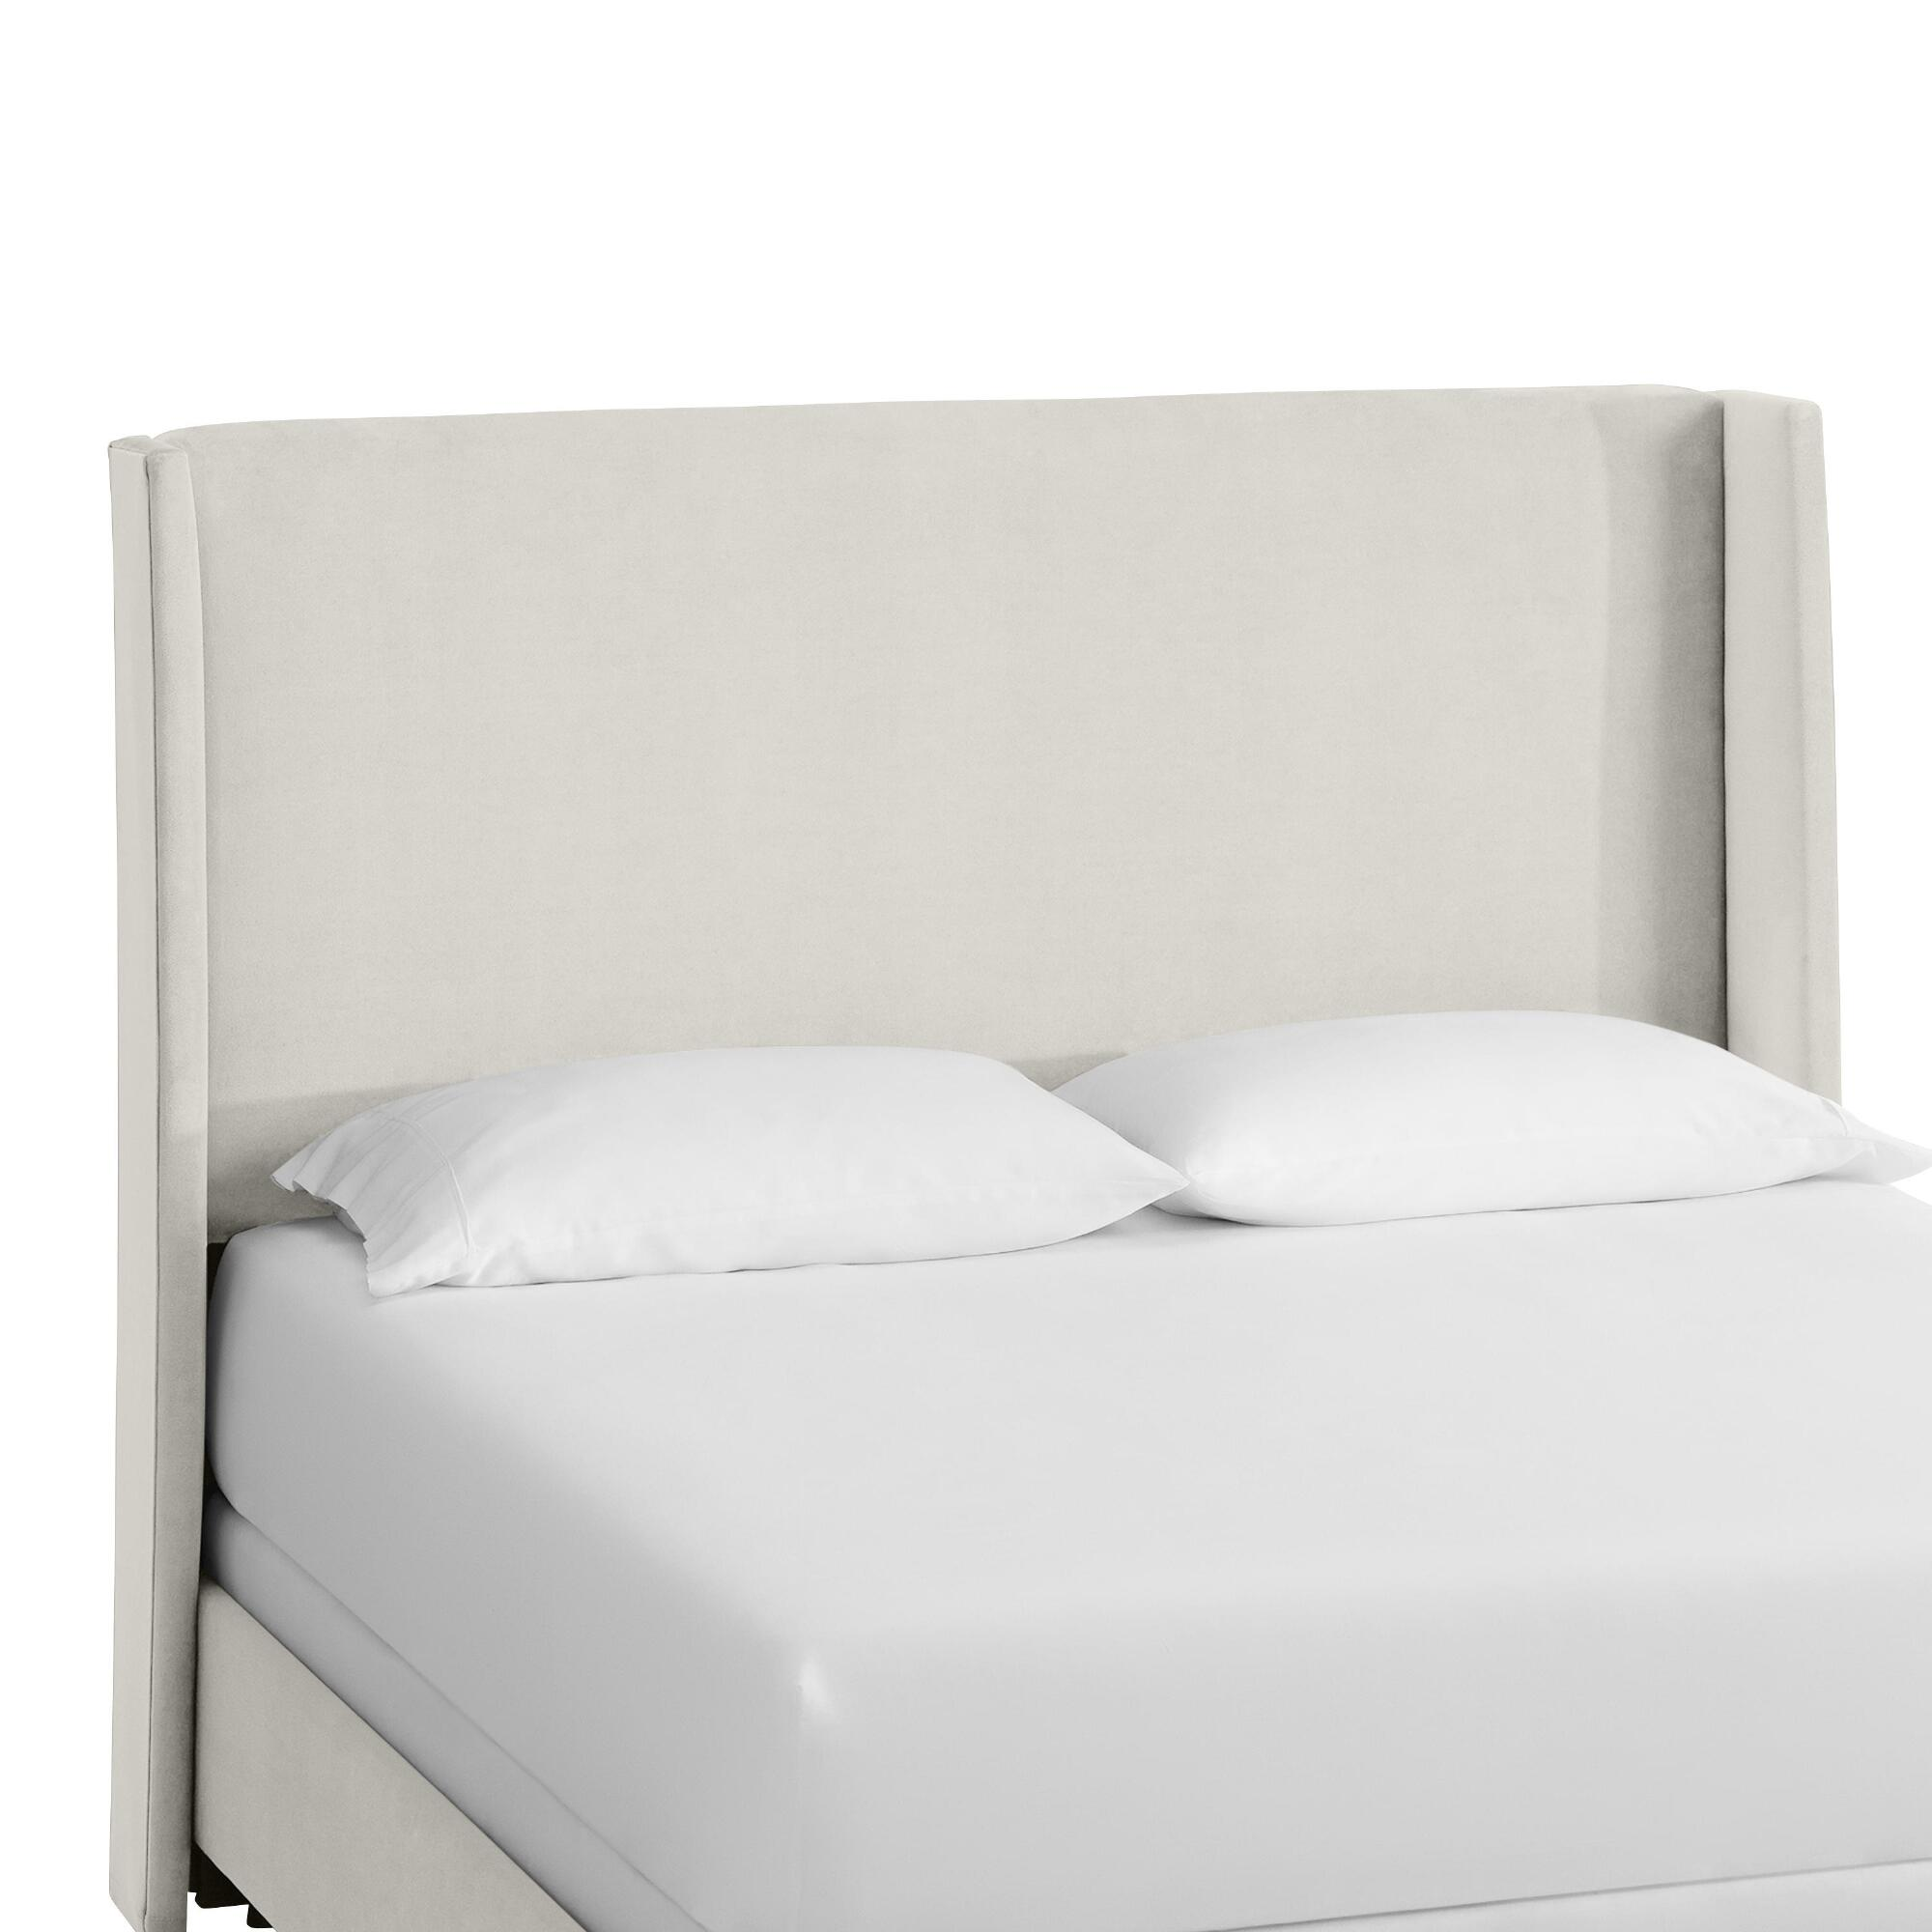 Velvet Bryn Upholstered Bed: White - Fabric - Full Bed by World Market Full/White